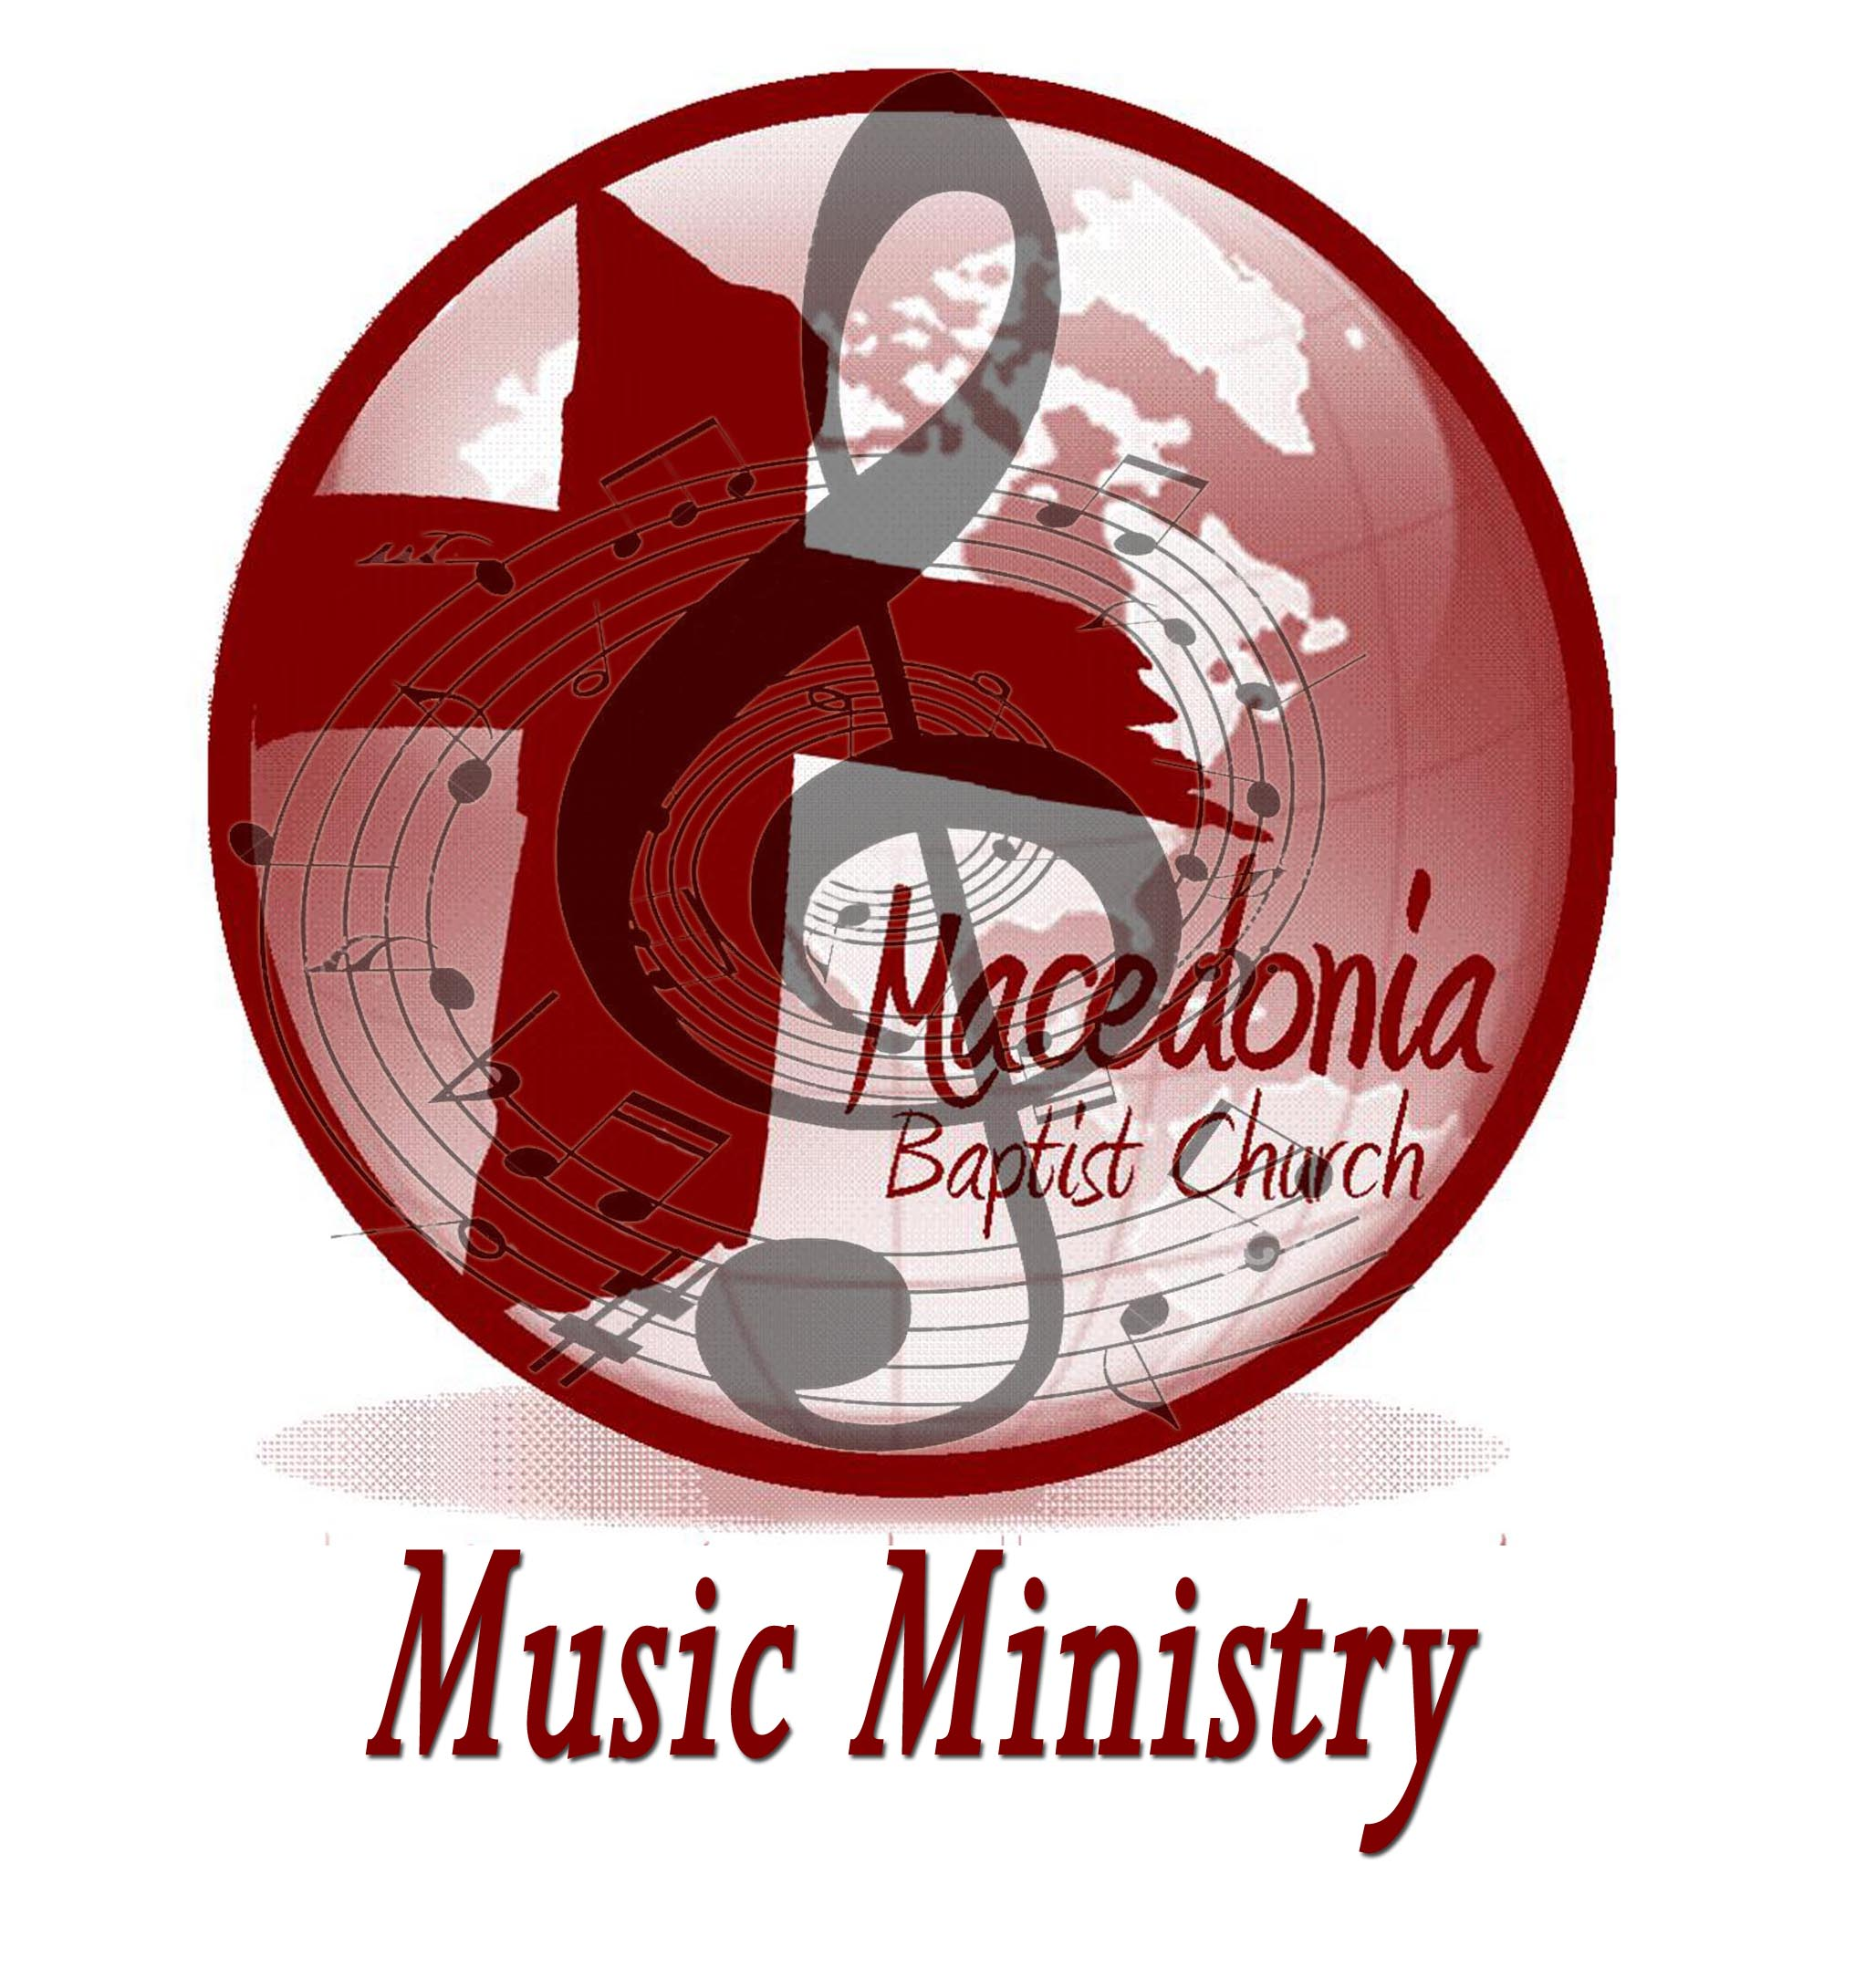 Macedonia Baptist Church - music ministry